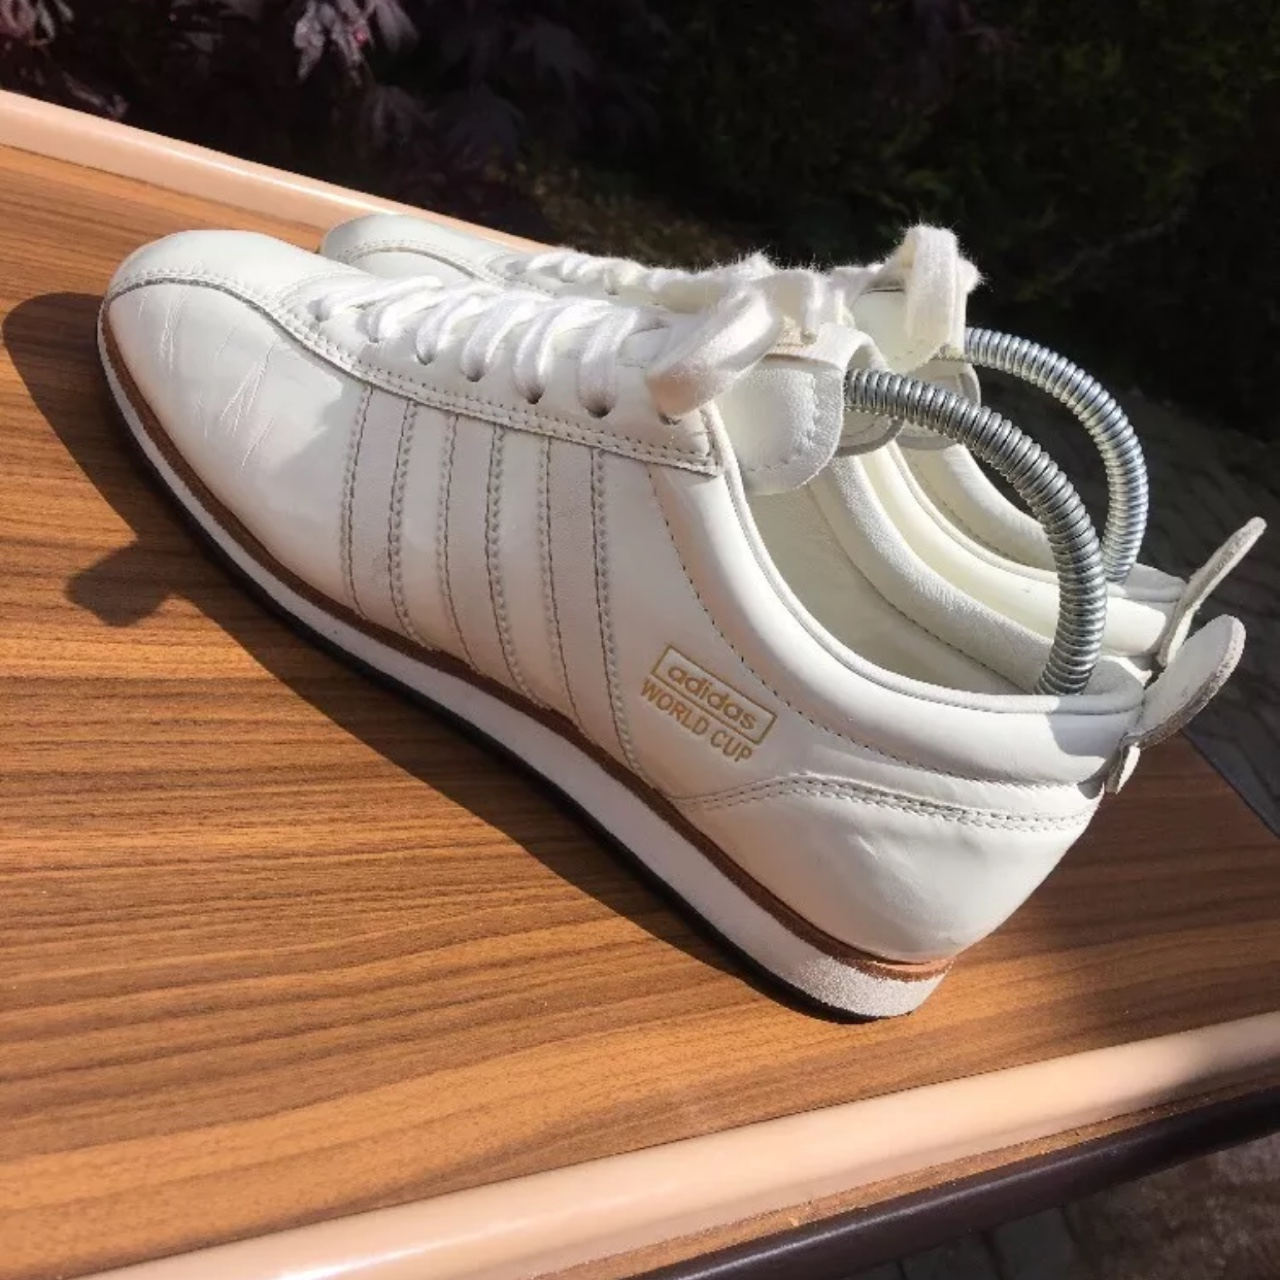 Adidas World Cup Trainers Size 6.5 9/10